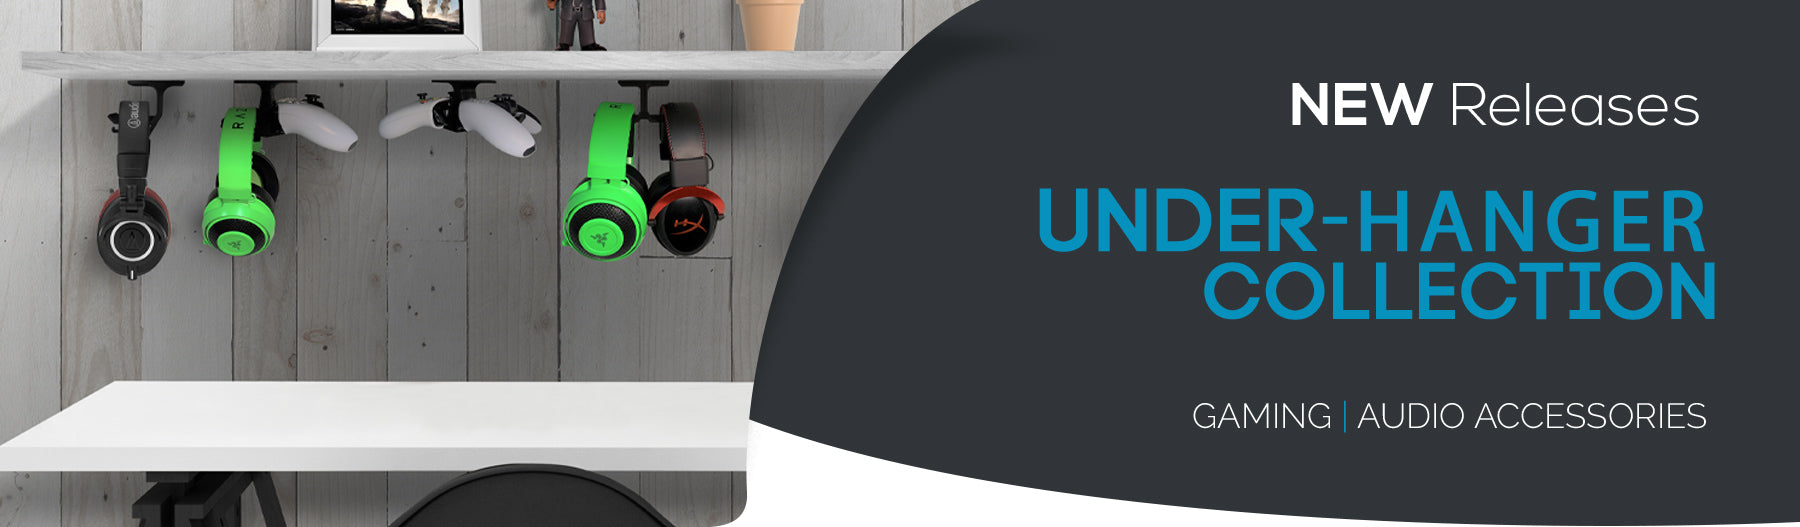 New - Hangers for under Desks & Shelves